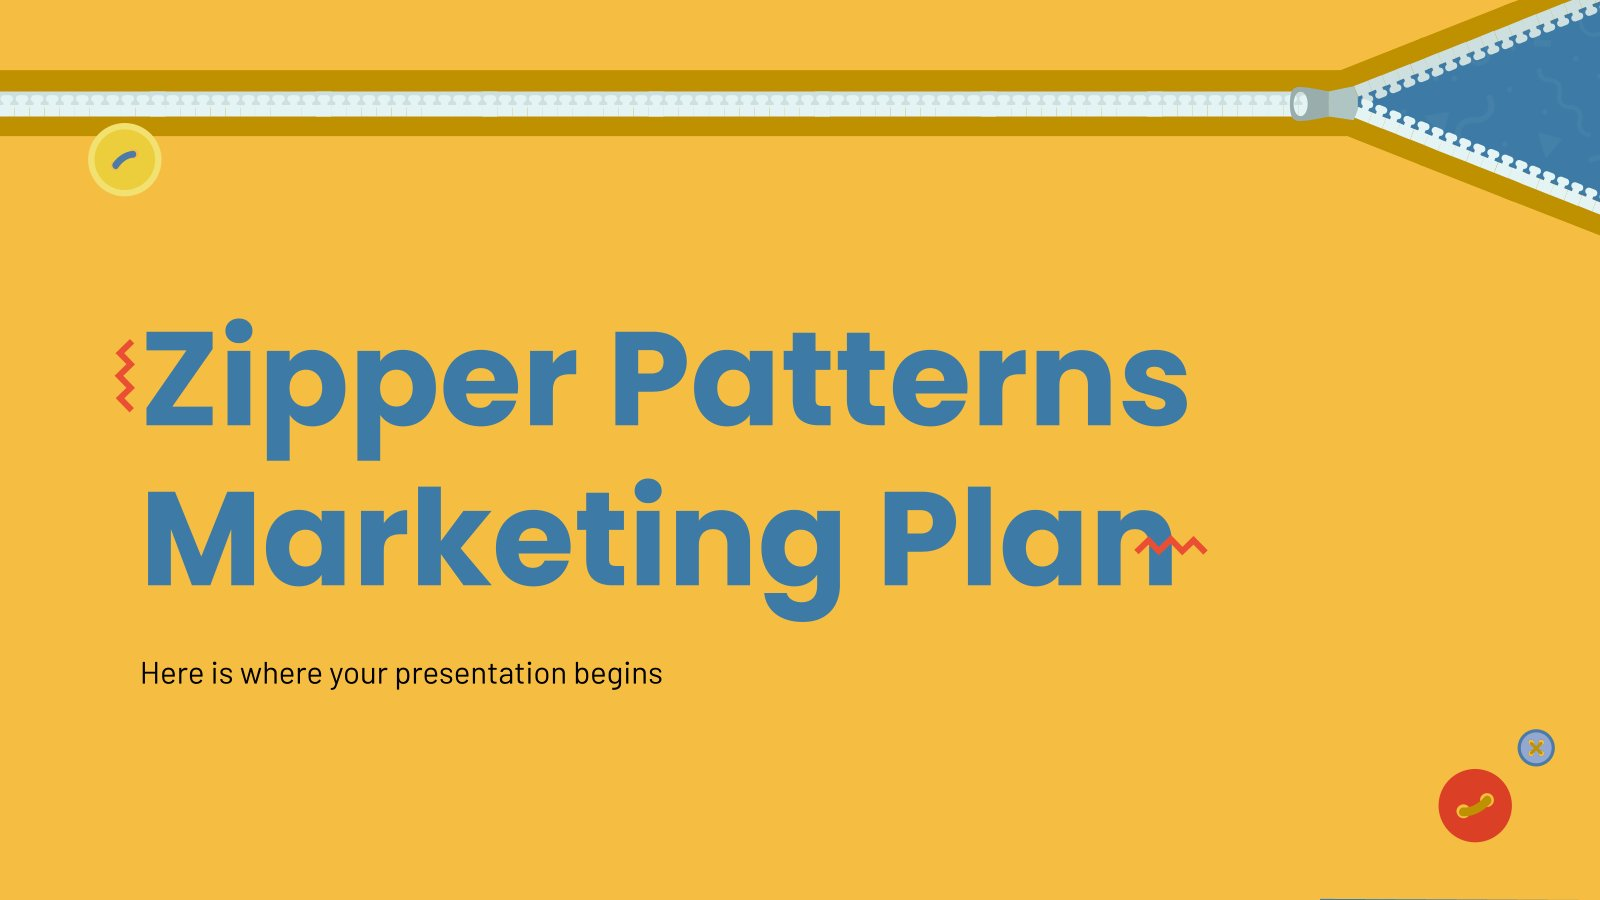 Zipper Patterns MK Plan presentation template